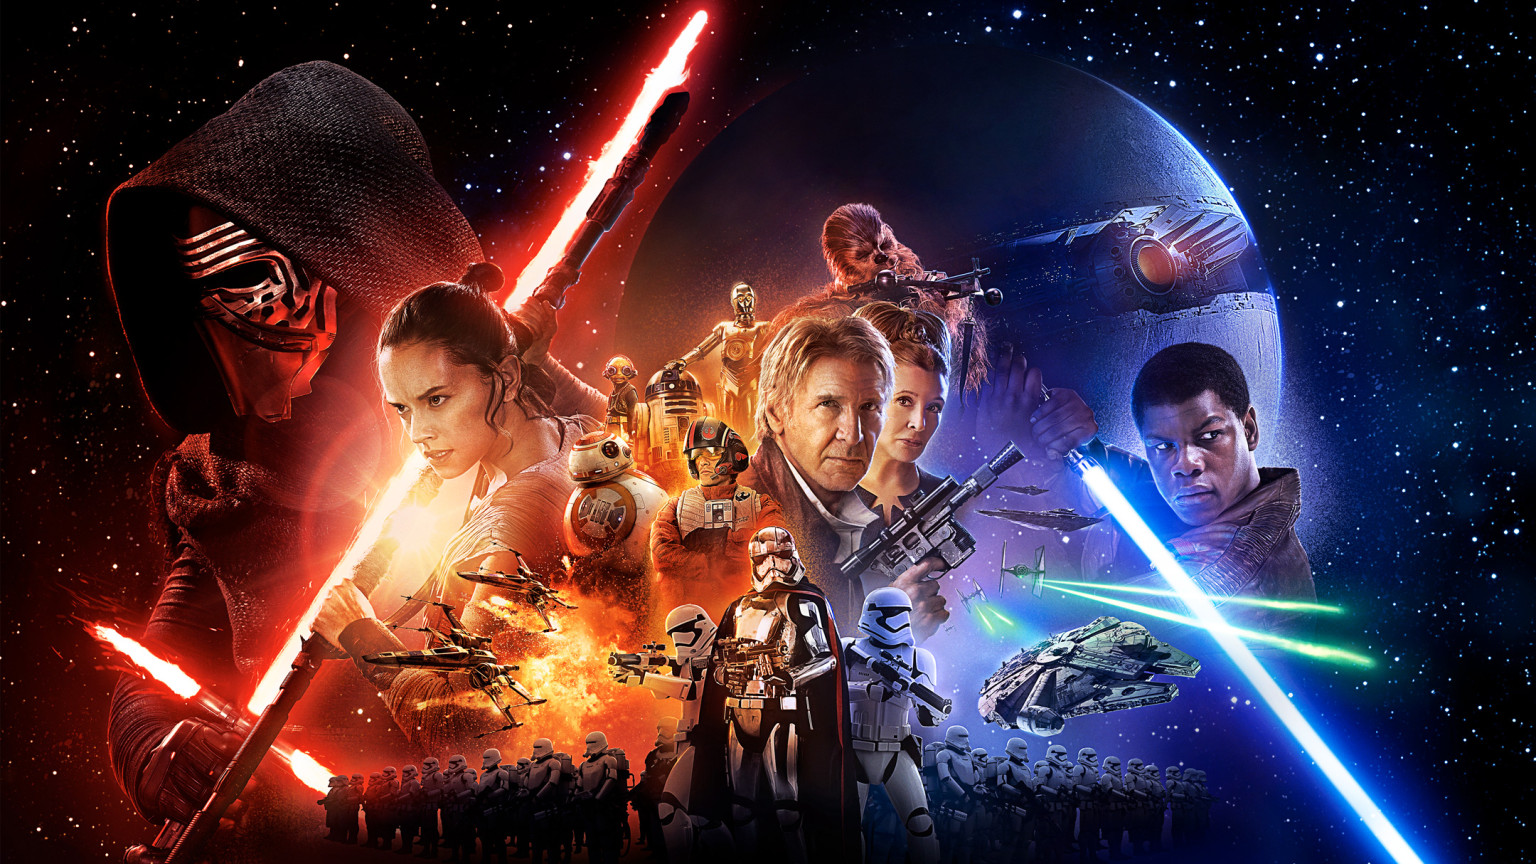 a review of the movie star wars For a film franchise that's more than 40 years old, star wars has had a  surprisingly hard time finding its voice lately jj abrams' the force.